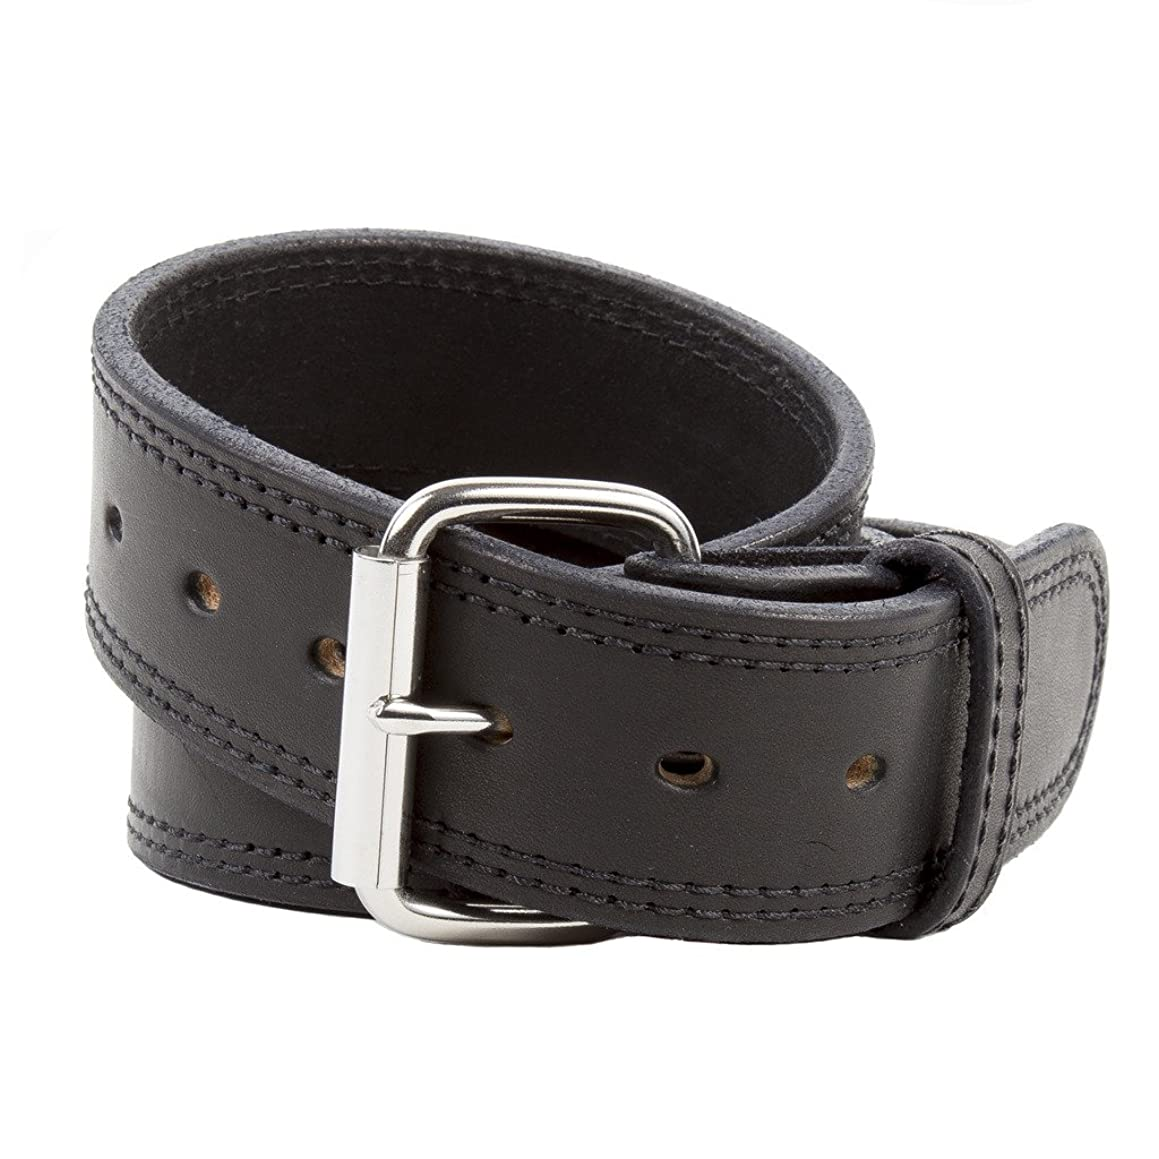 Relentless Tactical The Colossal Concealed Carry CCW Leather Gun Belt - 14 ounce - 1 3/4 inch Premium Full Grain Leather Duty Belt - Handmade in the USA!